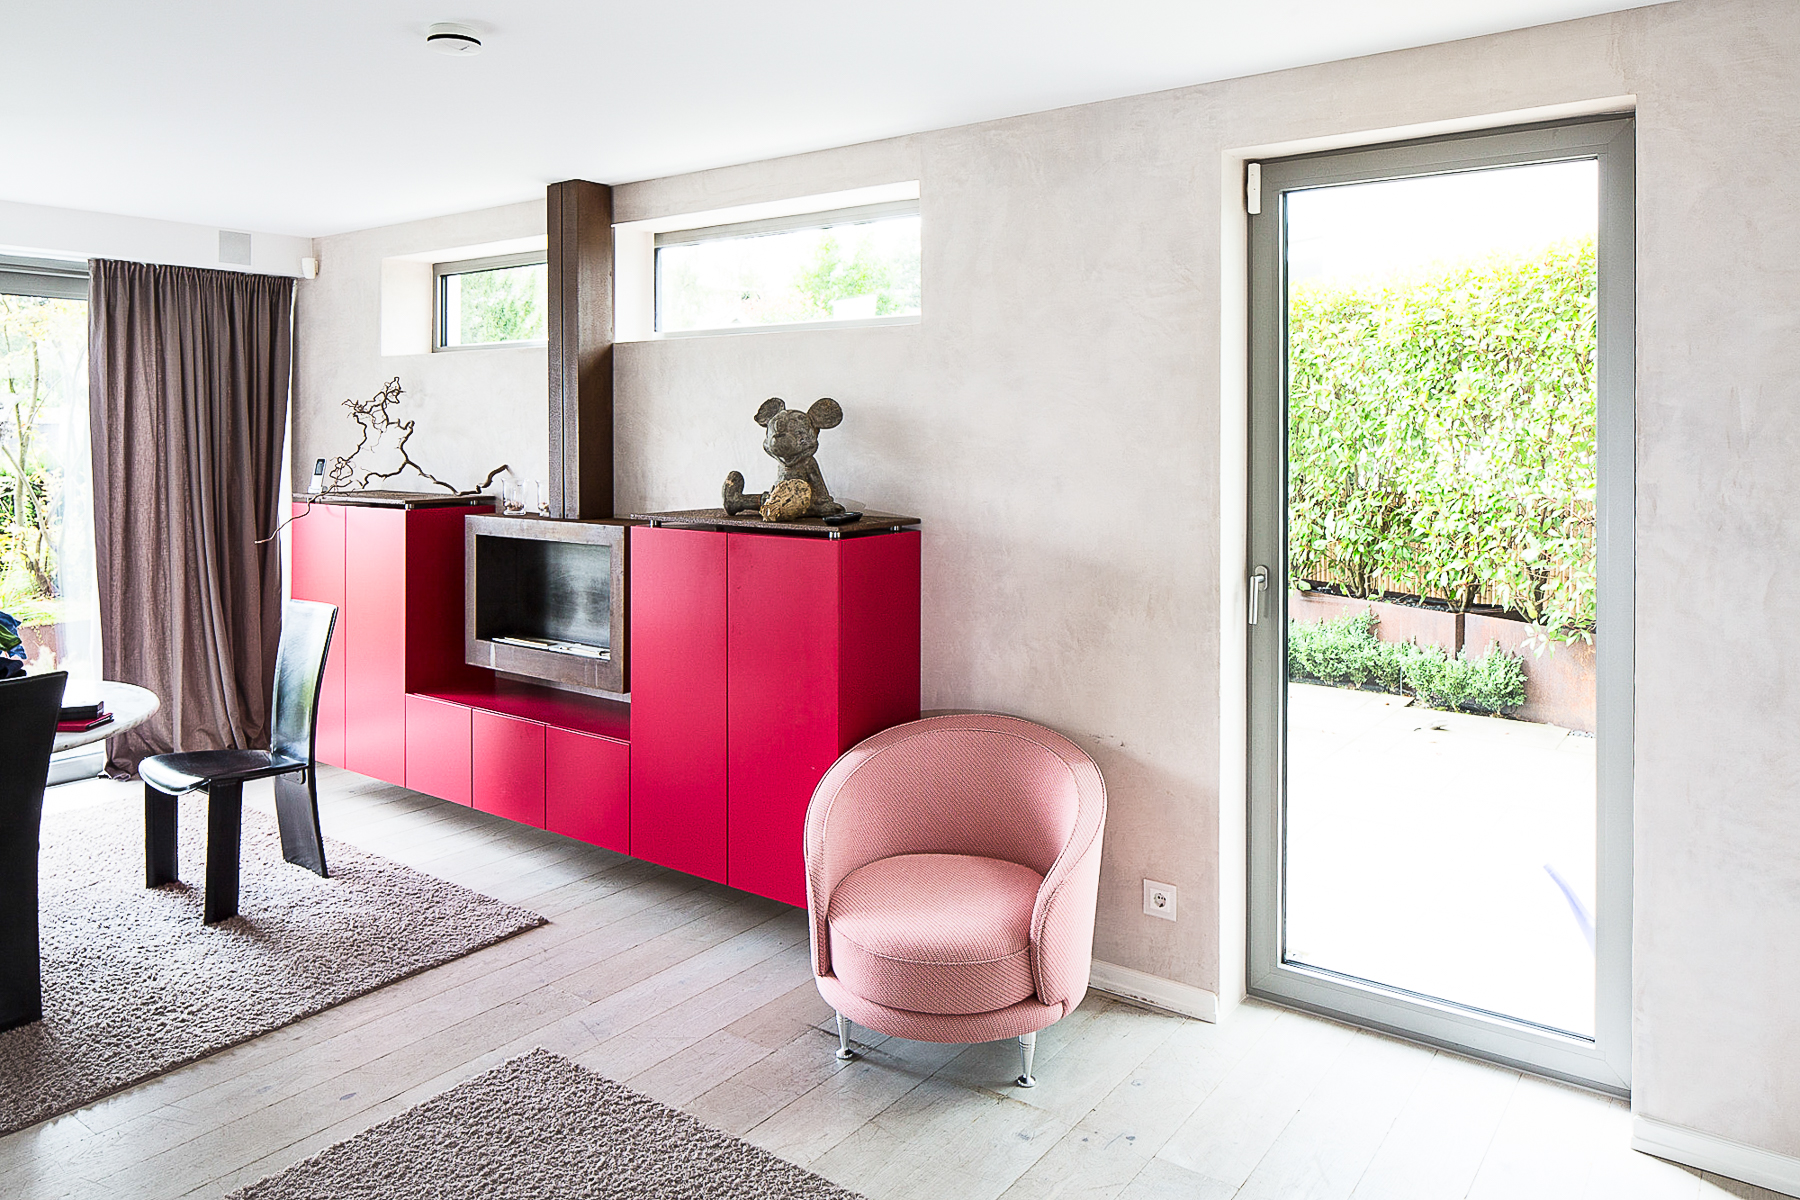 Apartment for Sale at High End Apartment with Magnificent Garden Wiesbaden, Hessen, 65193 Germany